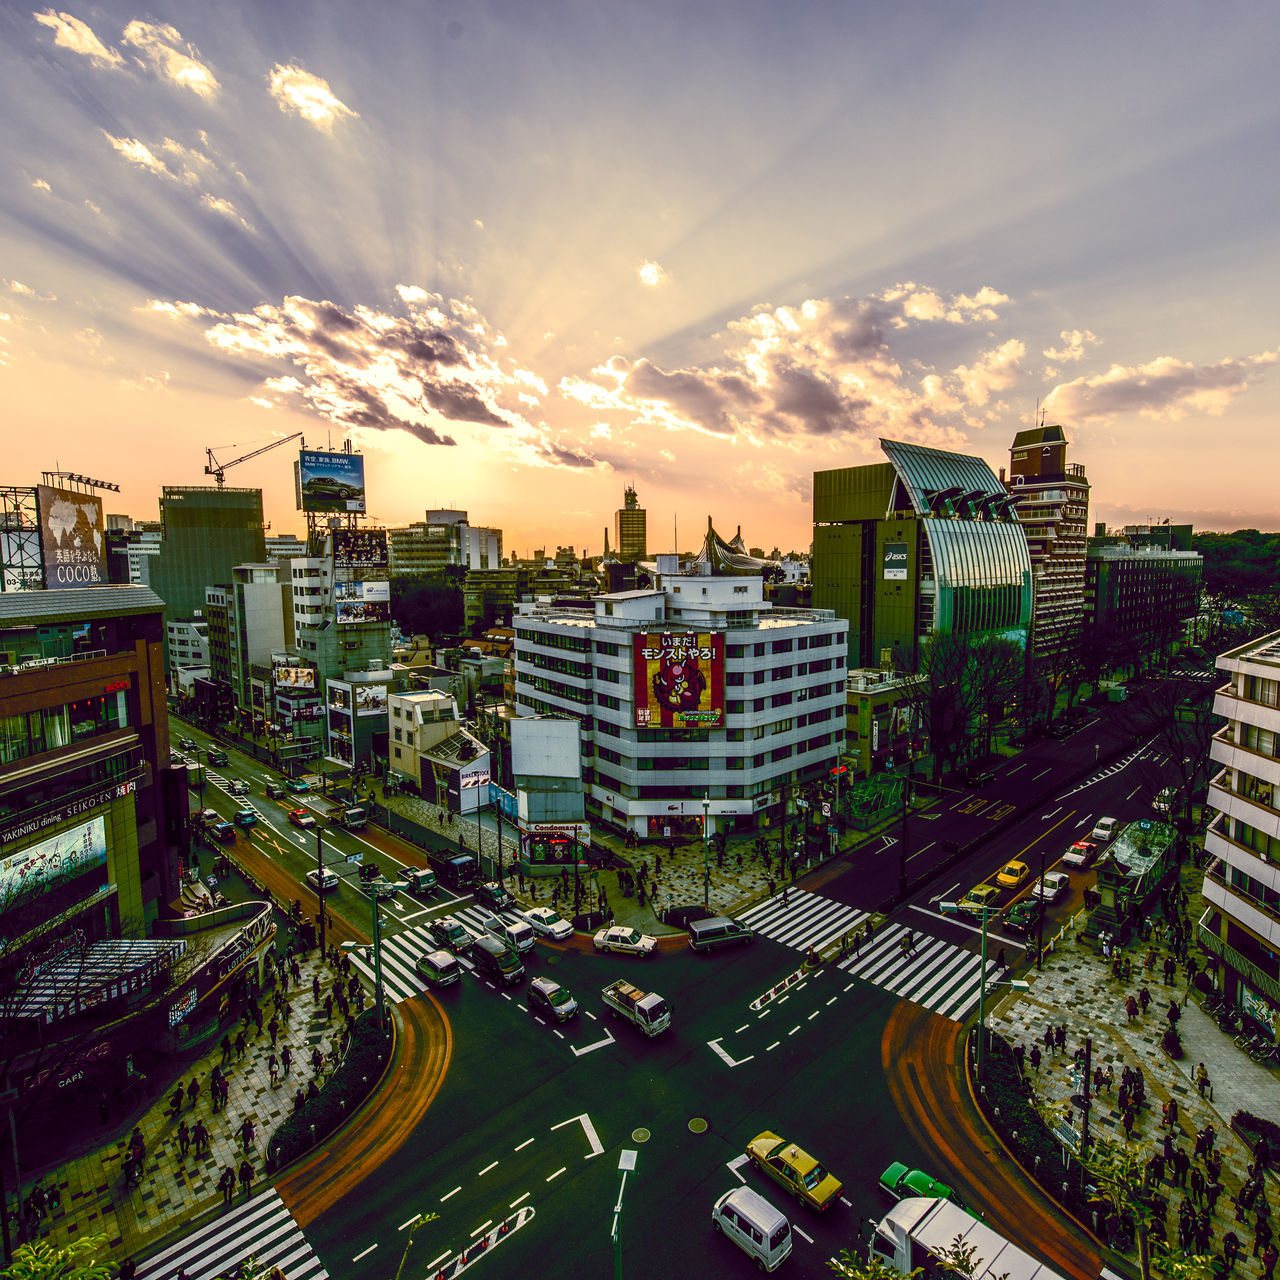 architecture, building exterior, cloud - sky, high angle view, city, built structure, cityscape, sky, city life, sunset, no people, skyscraper, outdoors, travel destinations, road, urban skyline, day, nature